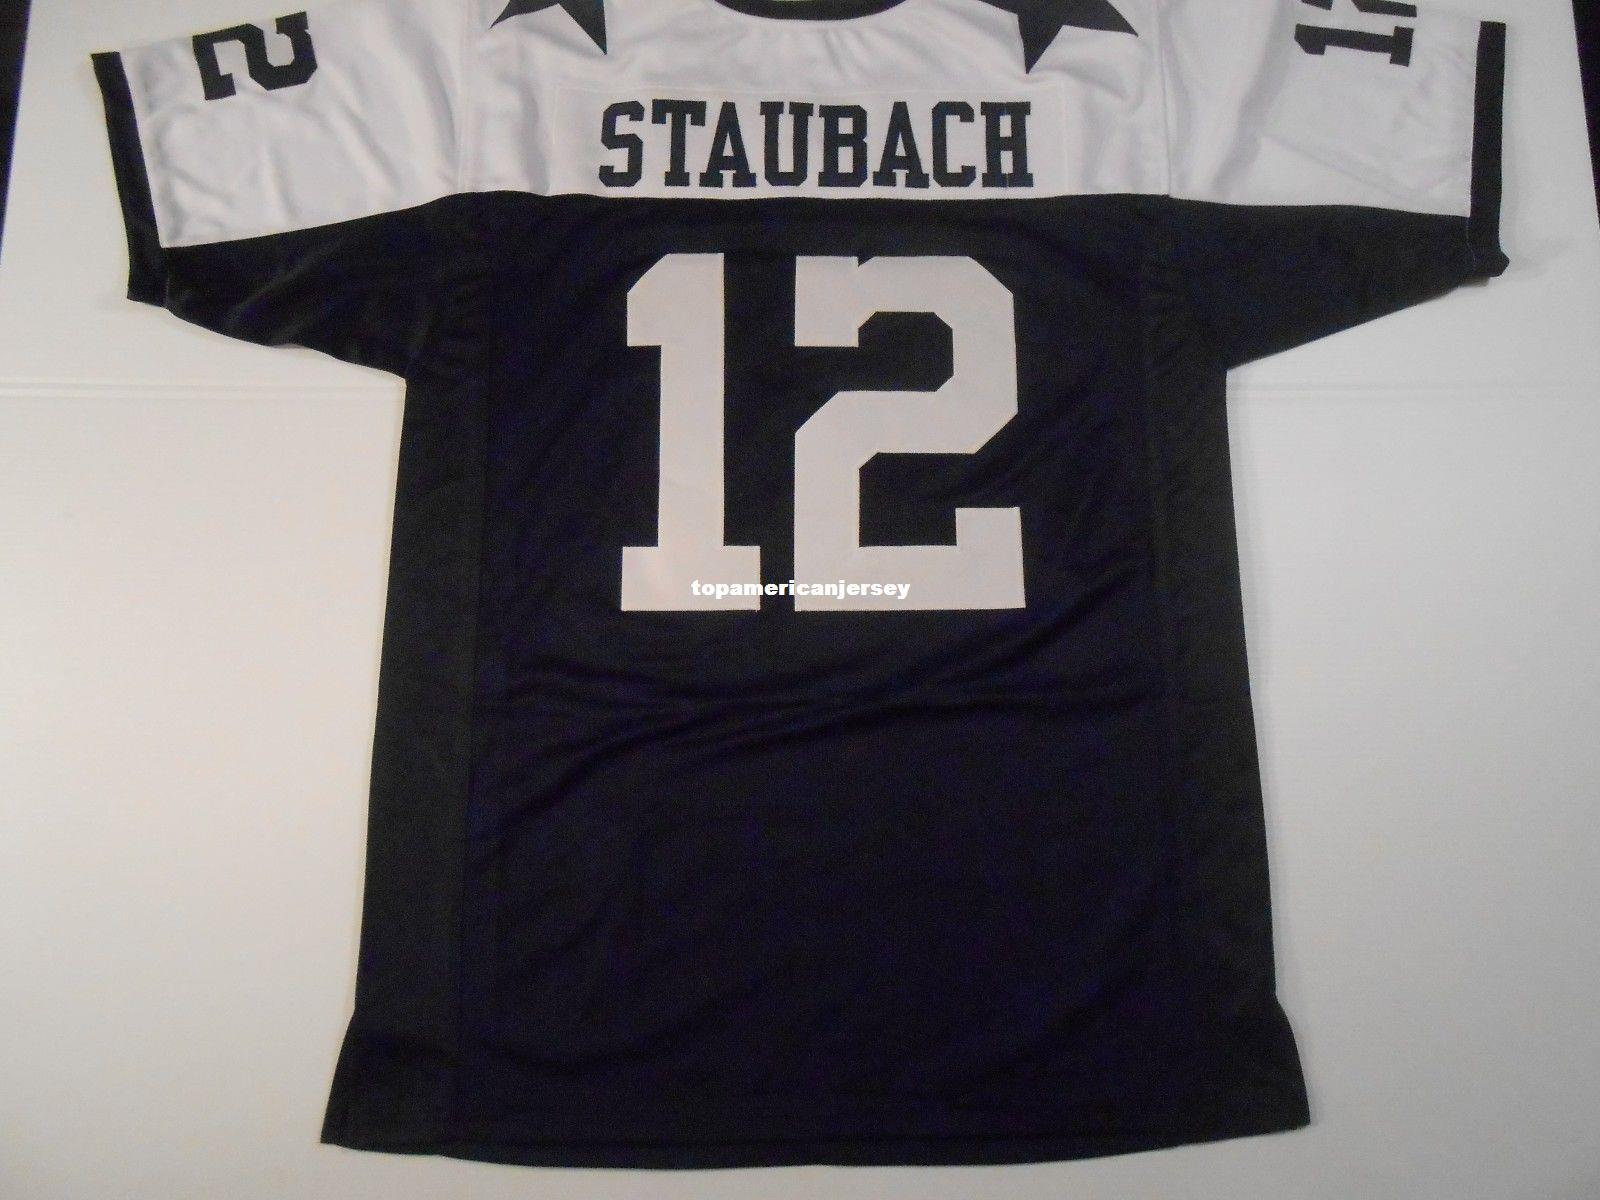 buy popular 5385b 77a35 Cheap Retro custom Sewn Stitched #12 Roger Staubach MITCHELL & NESS Jersey  Top S-5XL,6XL Men's Football Jerseys Rugby